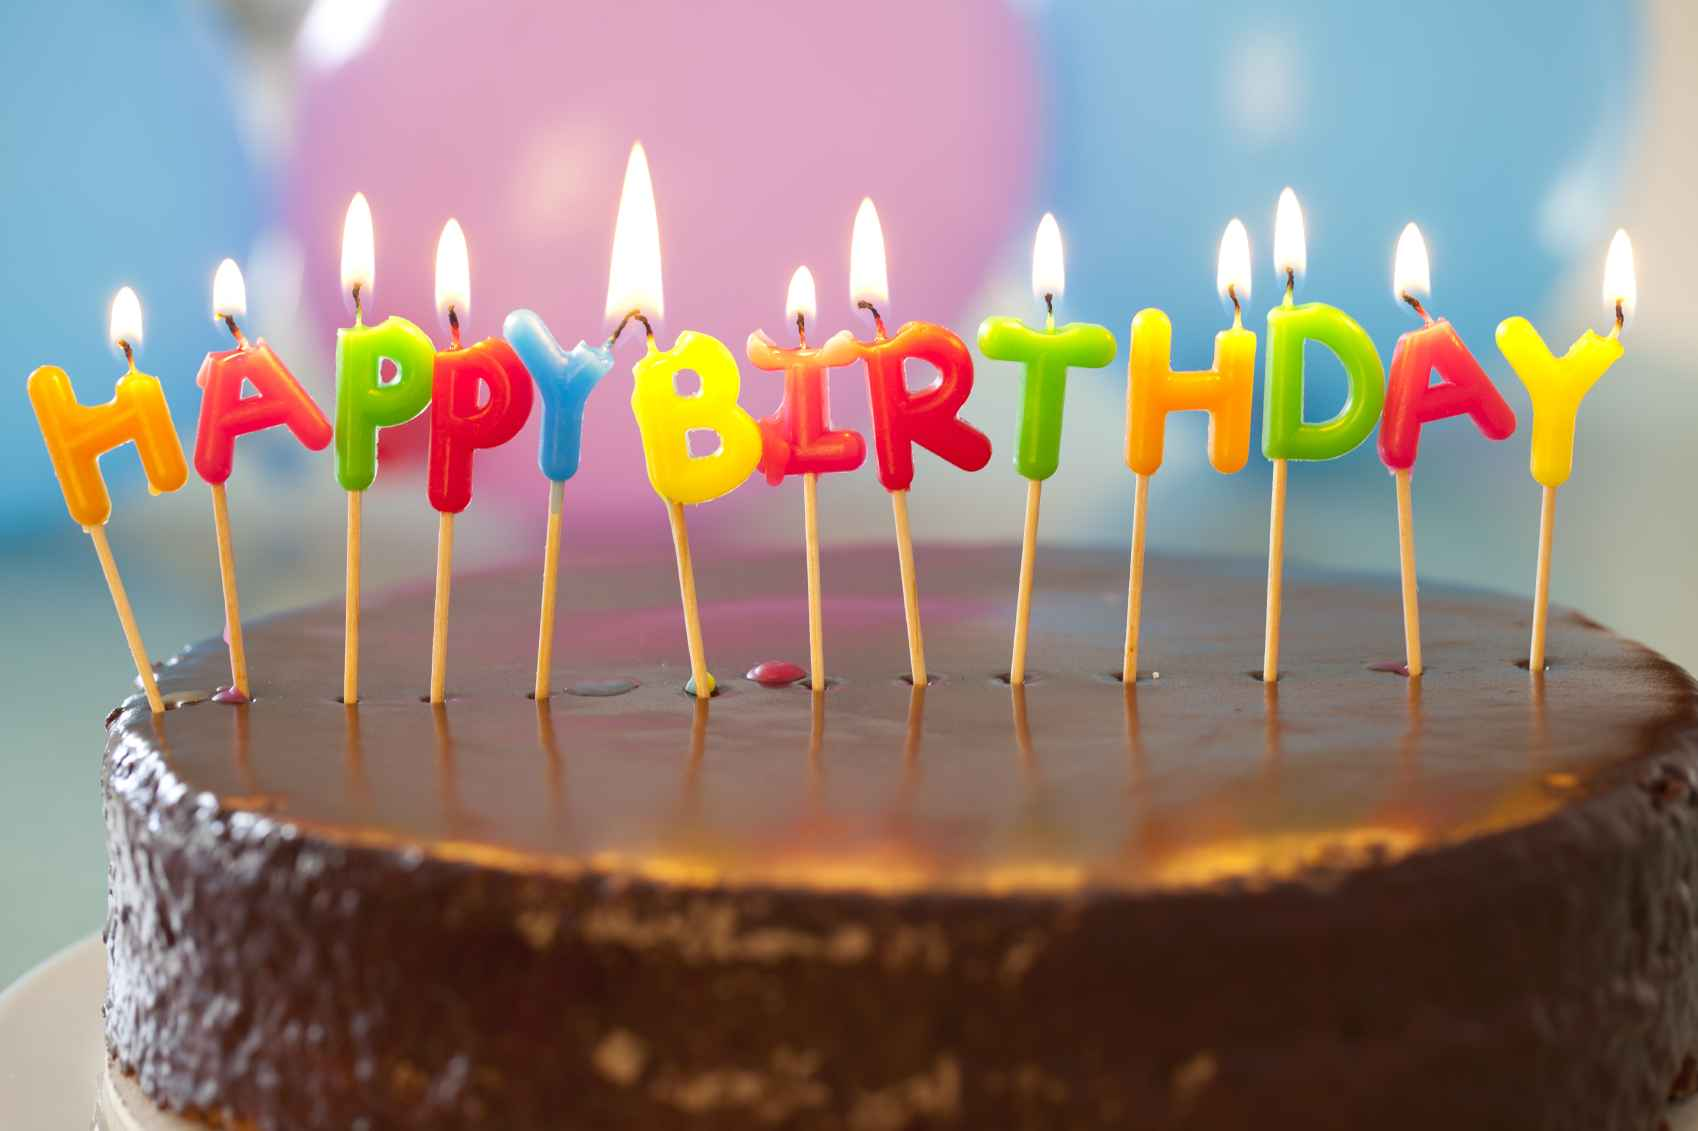 TOP} Happy Birthday Cake Images 2017 Pictures Wishes Photos Wallpapers